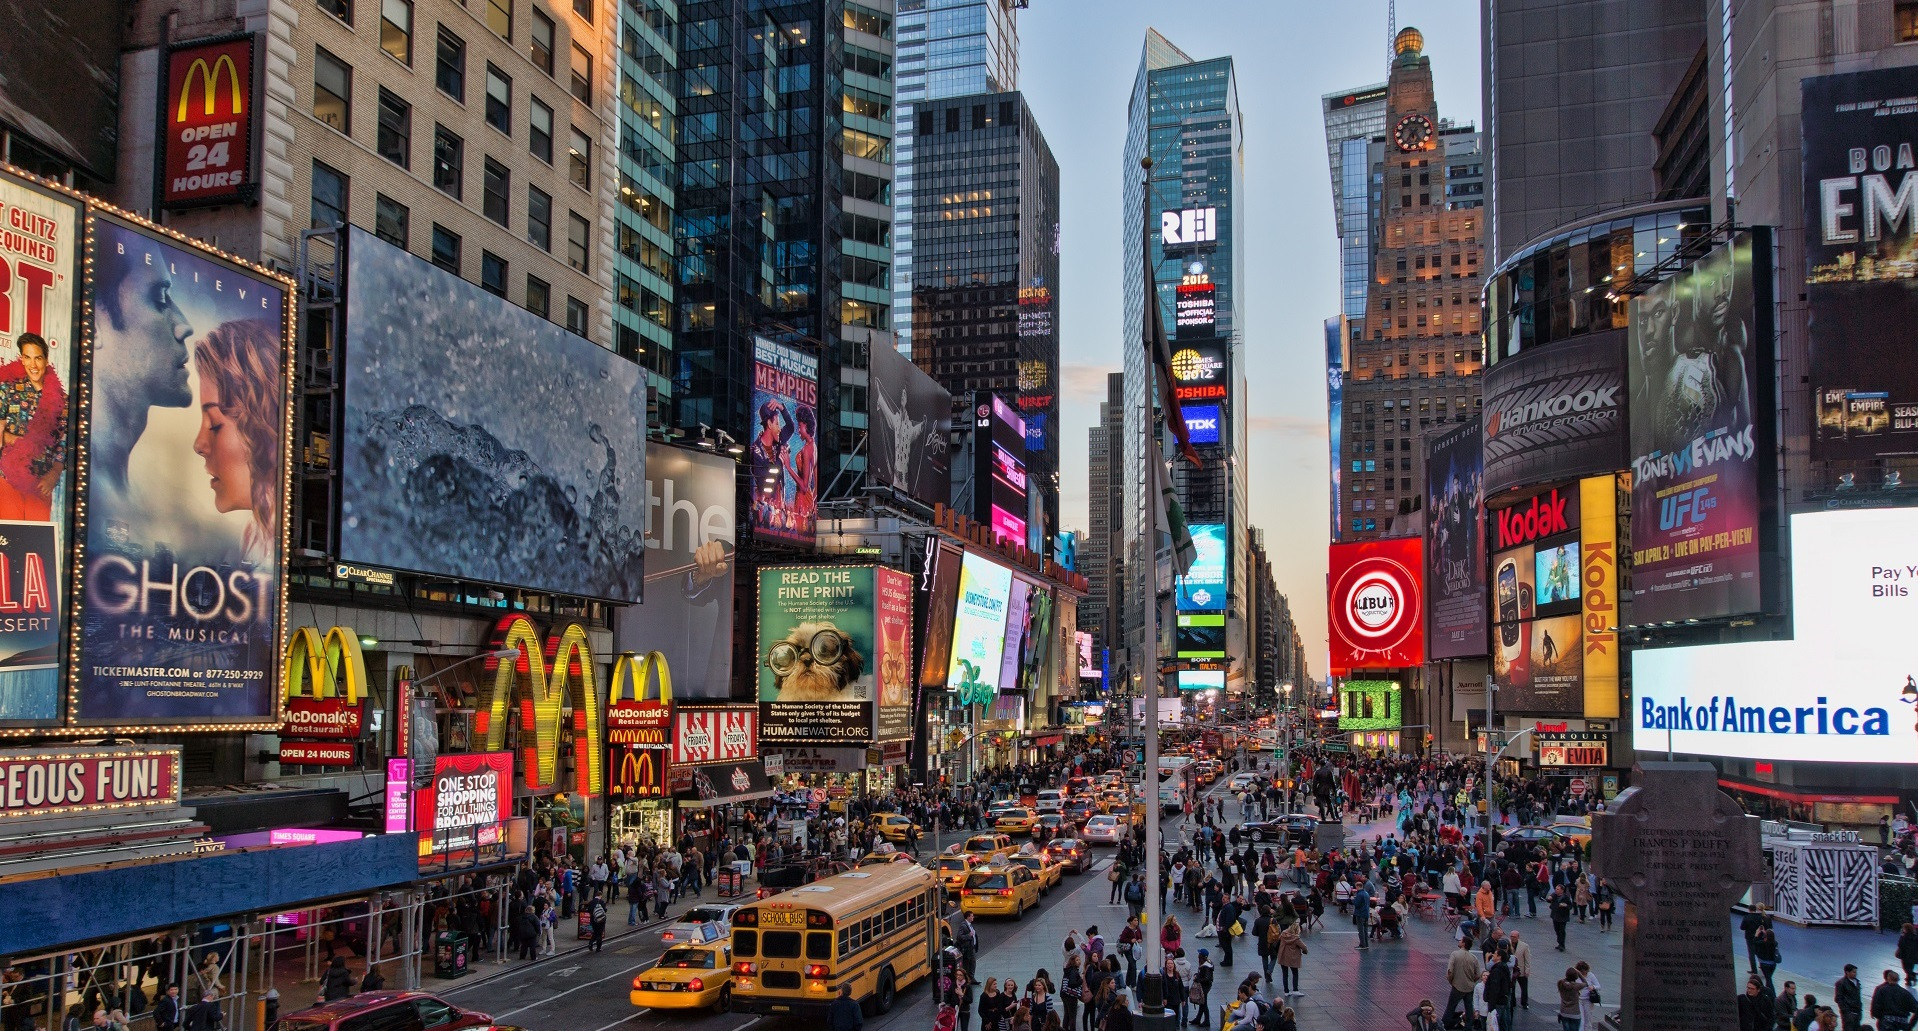 NYC_-_Time_Square_-_From_upperstairs web